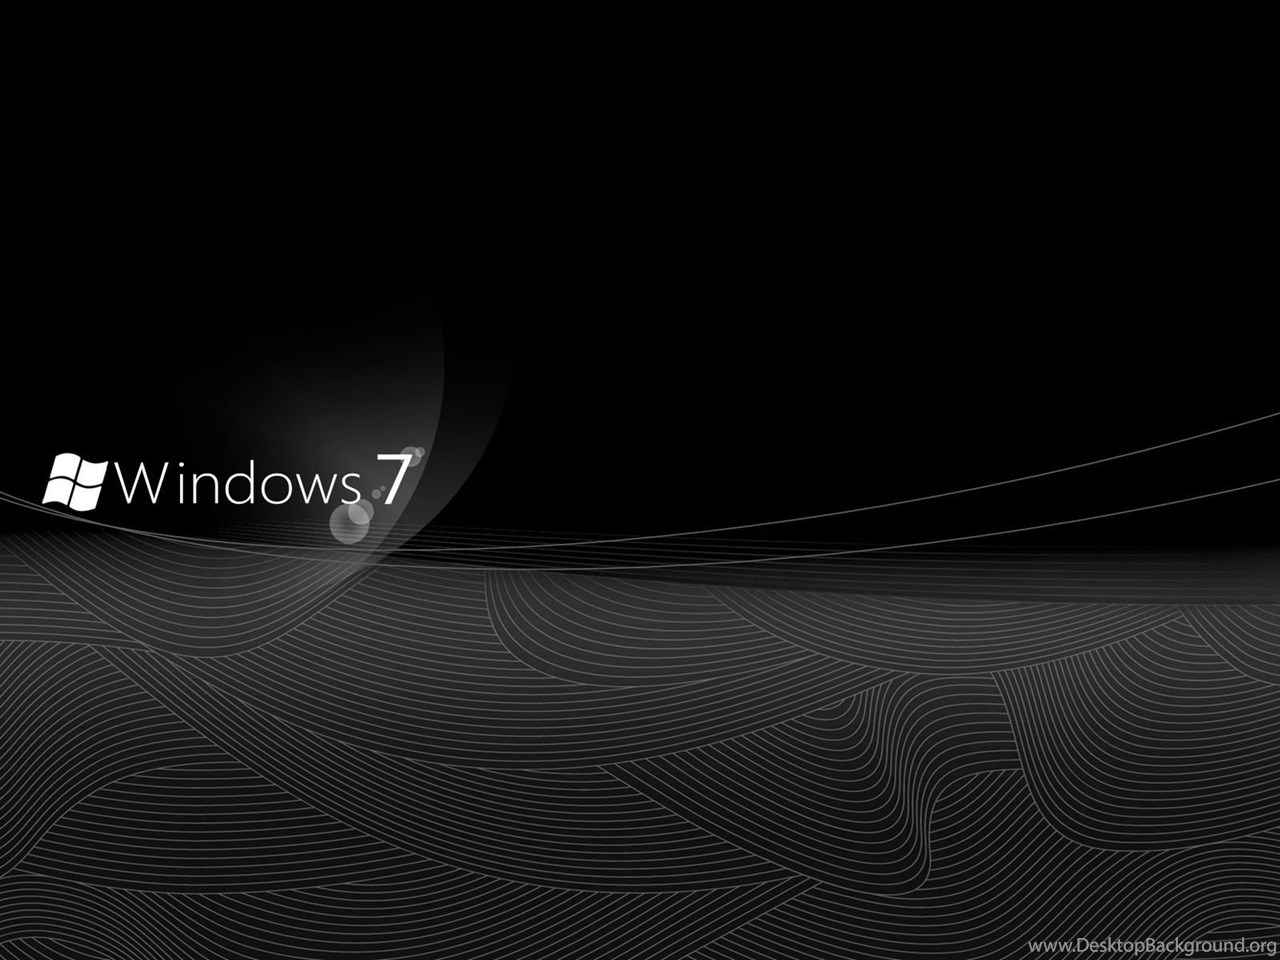 packard bell wallpapers hd windows wallpapers - HD 1152×864